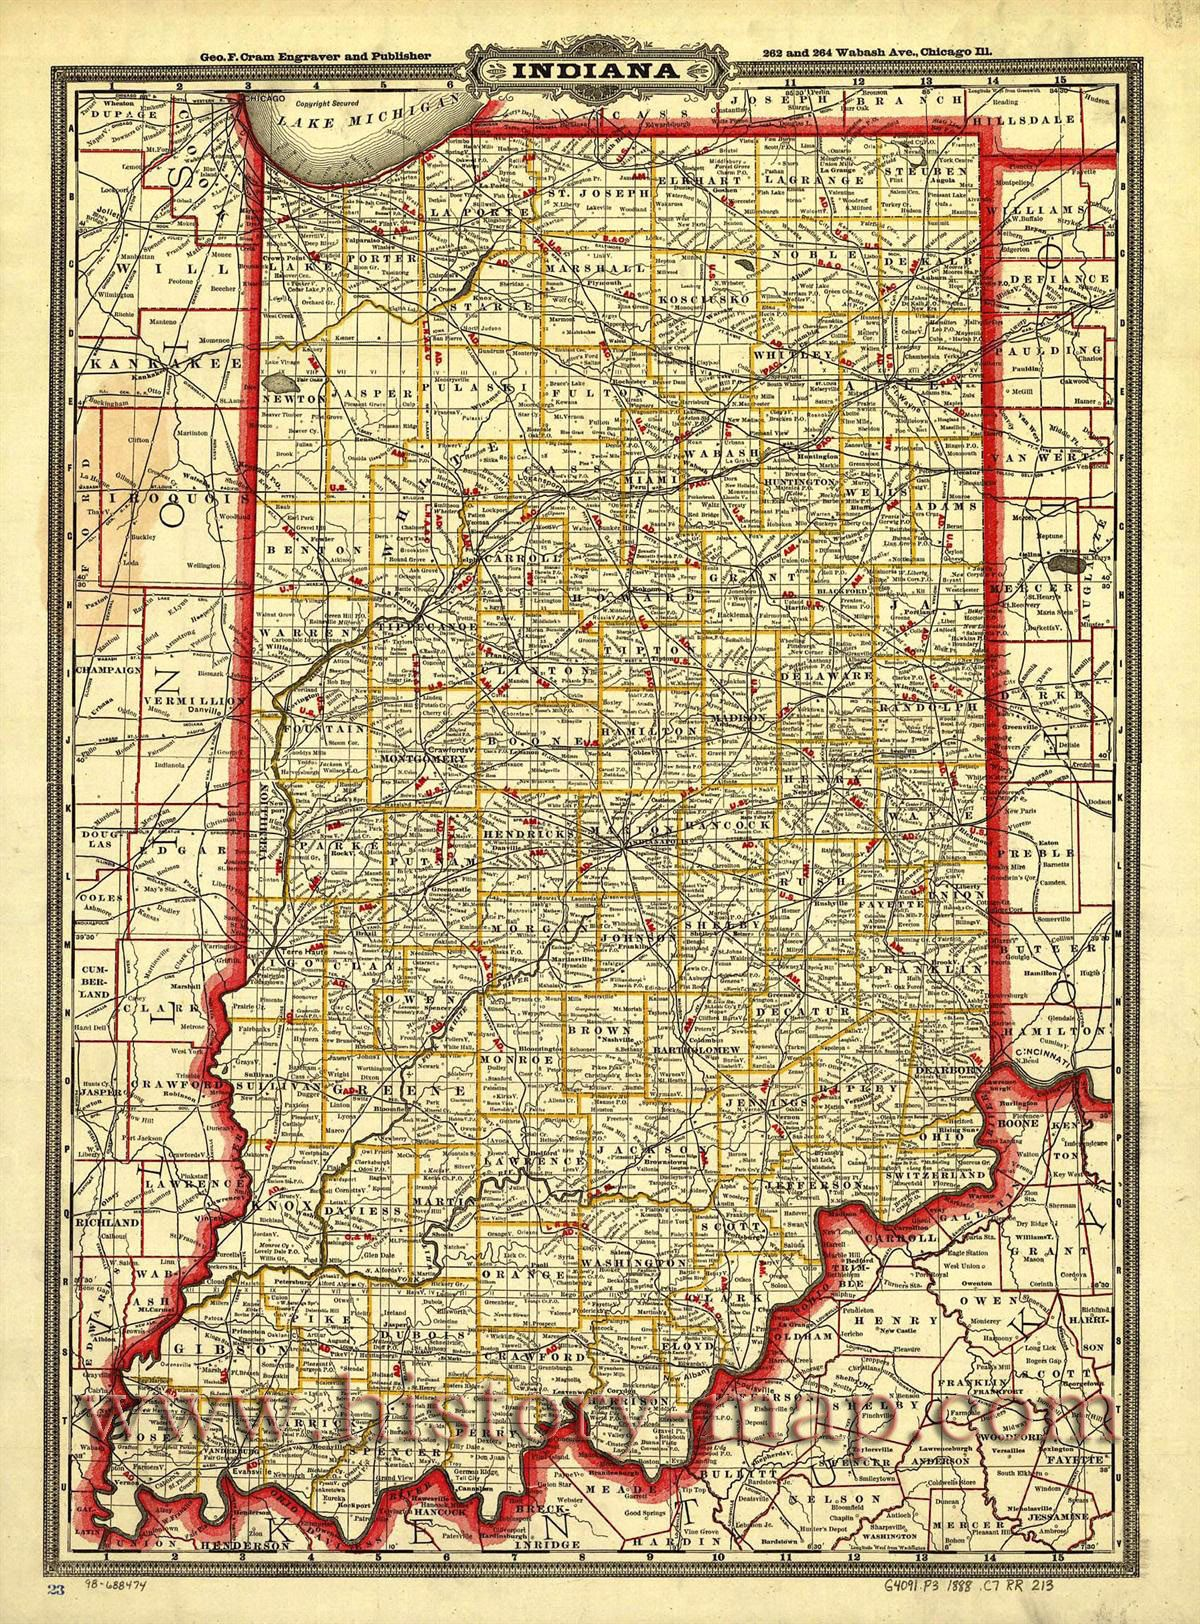 Township And Railroad Map Of Indiana Taken In Shows Railroad - Indiana road map with cities